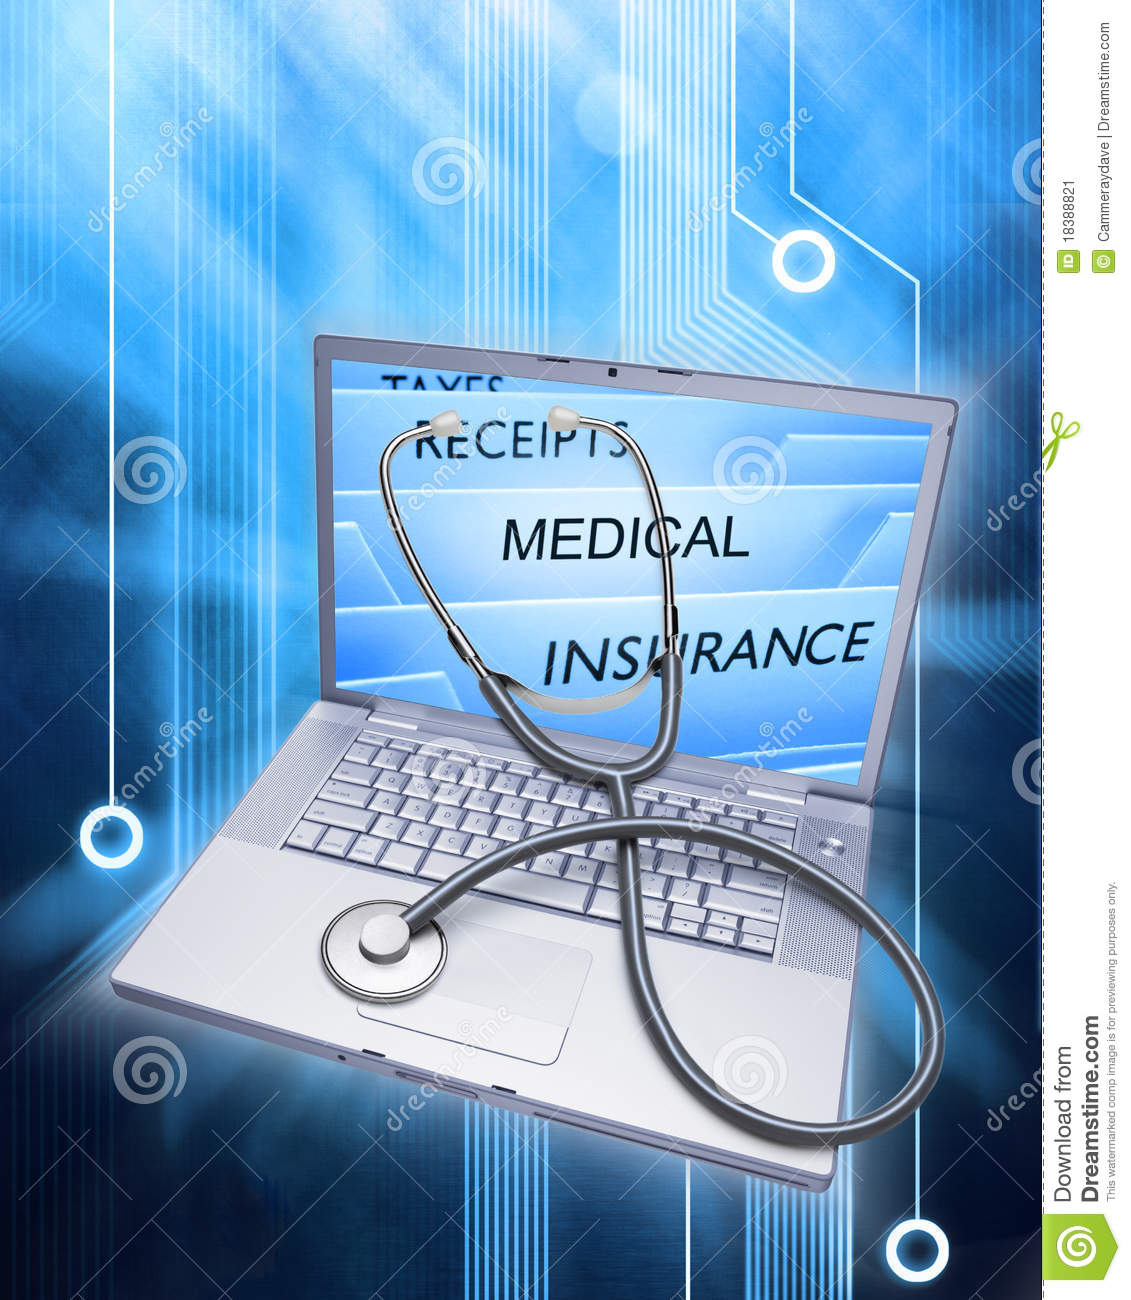 Insurance Health Records Stethoscope Computer